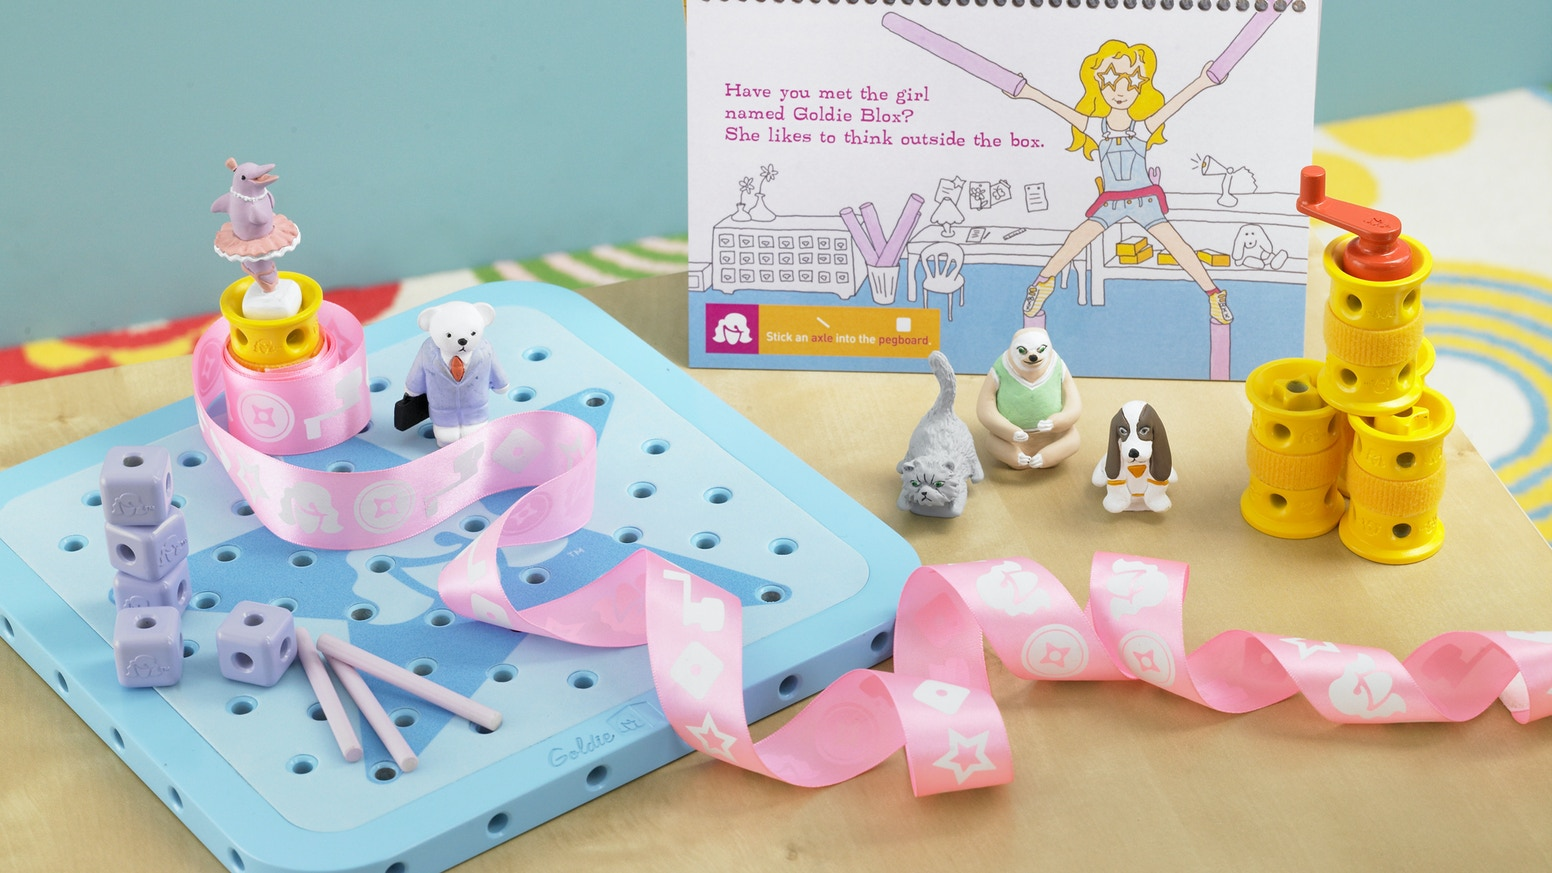 GoldieBlox: The Engineering Toy for Girls by Debbie Sterling ...